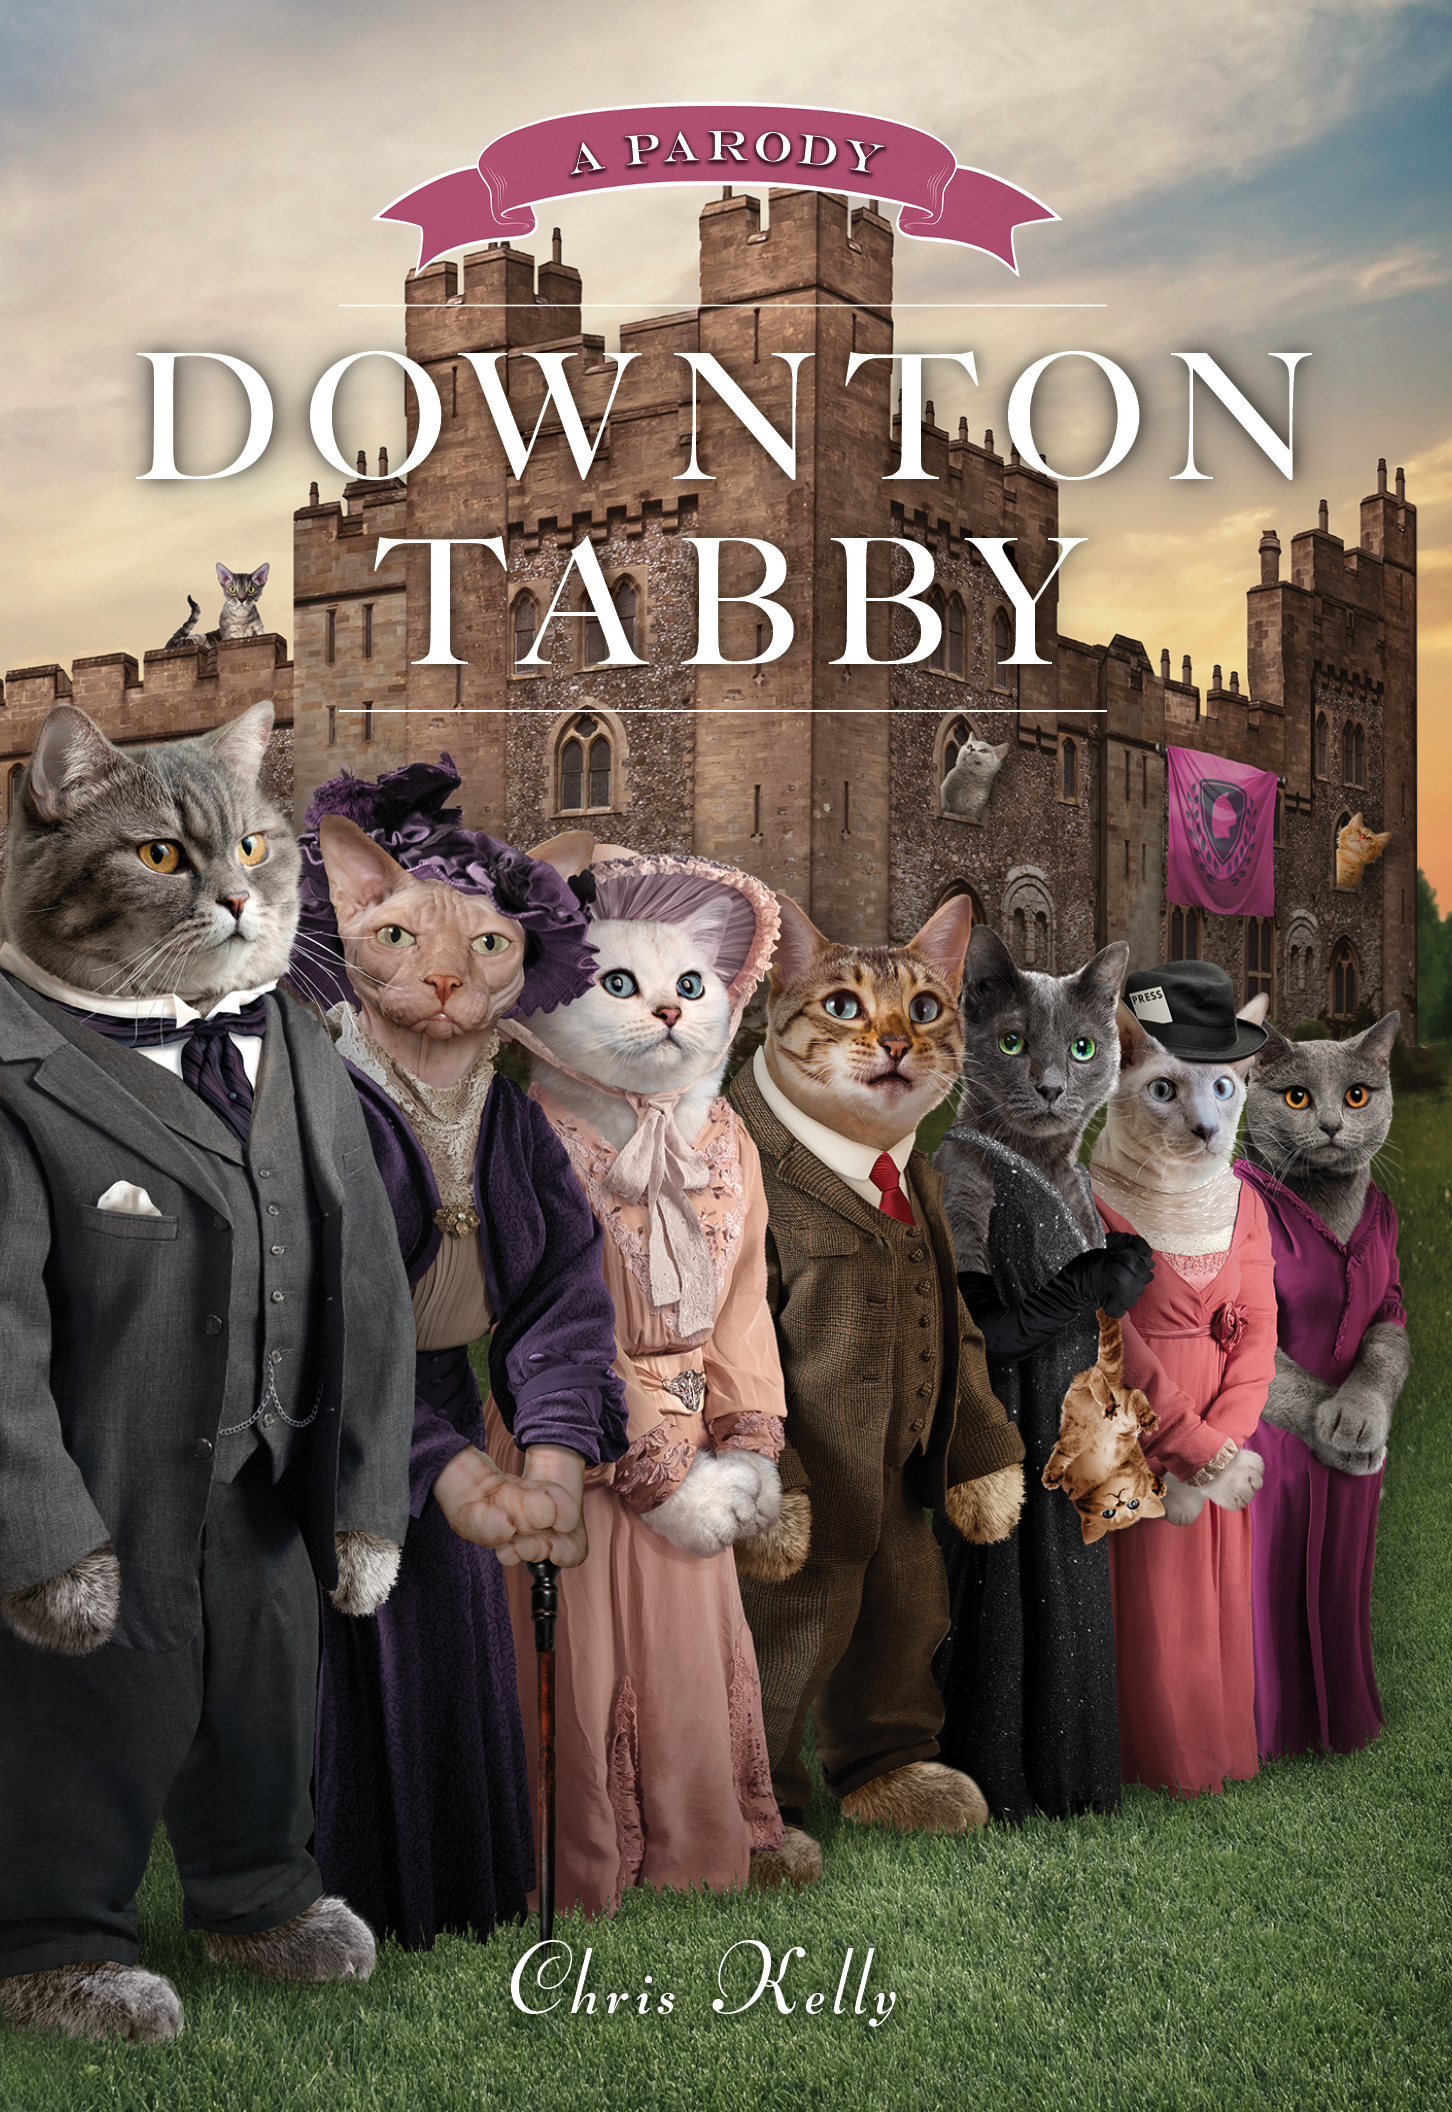 Downton-tabby-9781476765945_hr